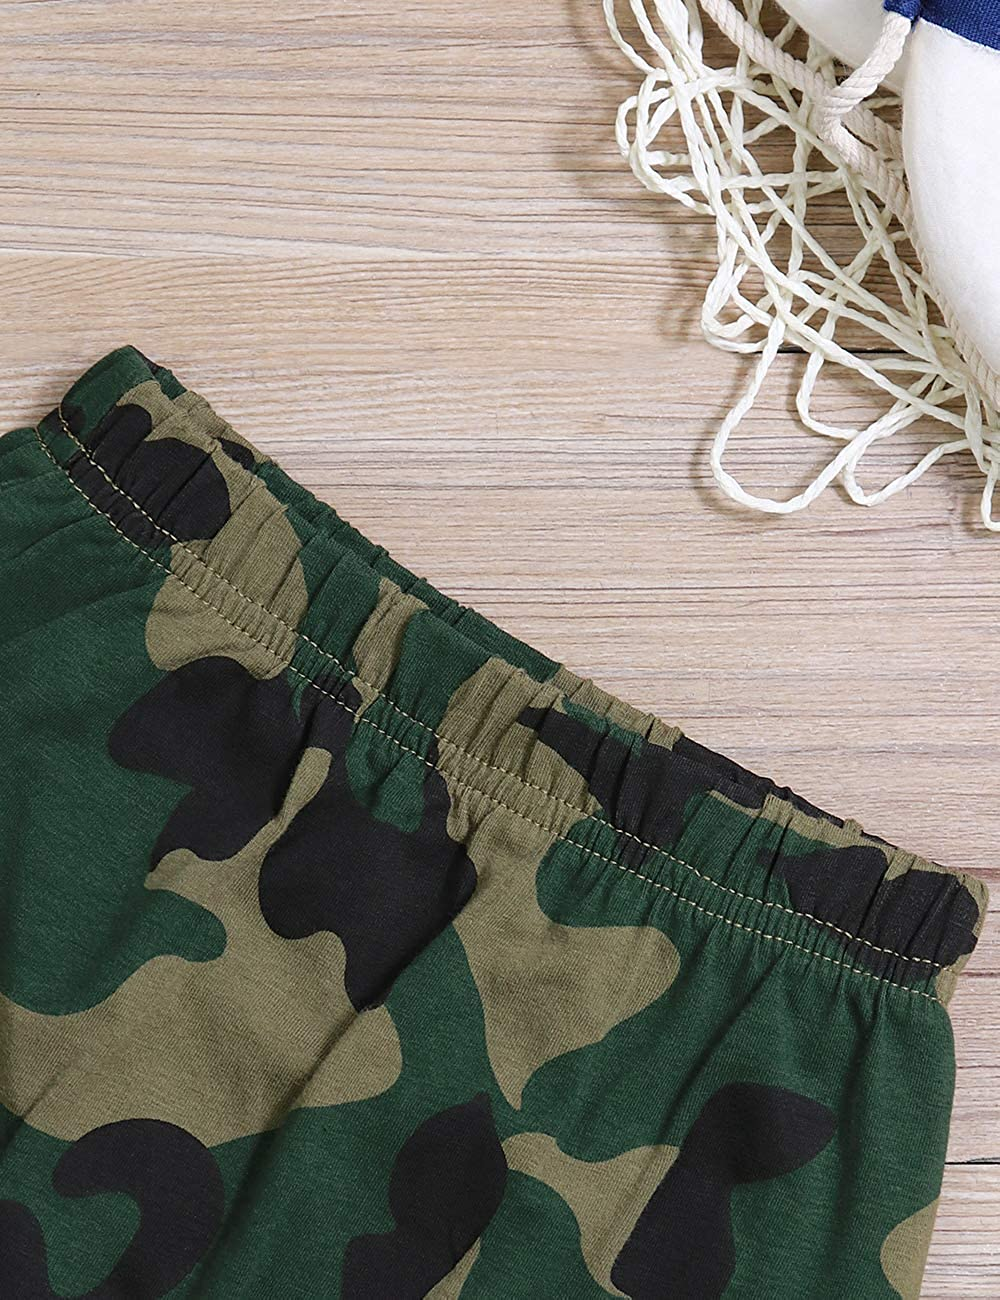 Toddler Baby Infant Boy Clothes Mr Steal Your Girl Vest Camouflage Shorts Summer Outfit Set